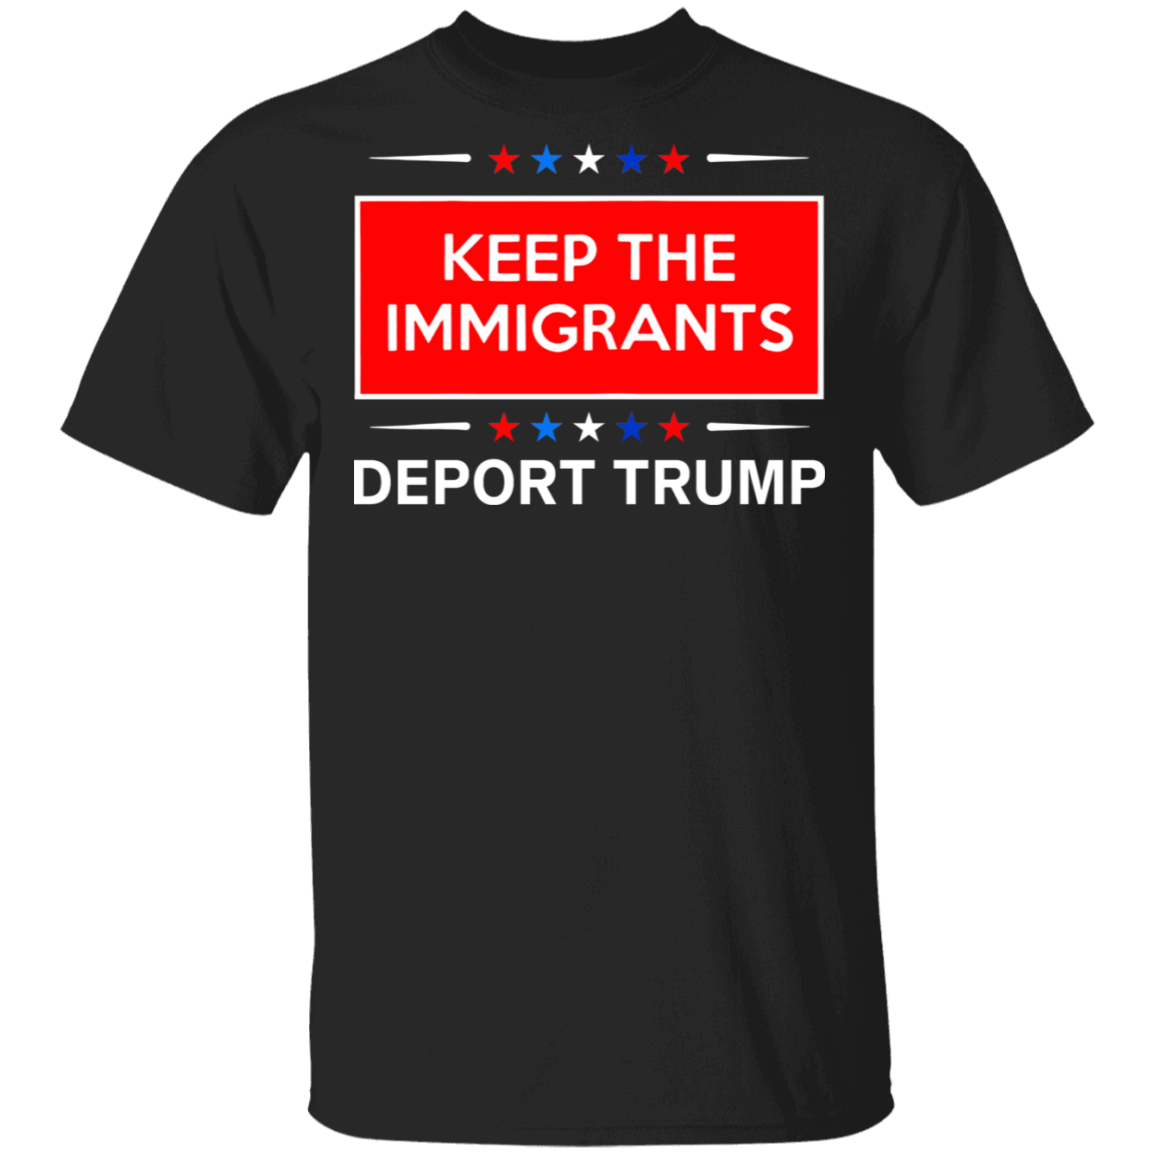 Keep The Immigrants Deport Trump Shirt Anti Trump Republicans Convention Anti Racism T-Shirt